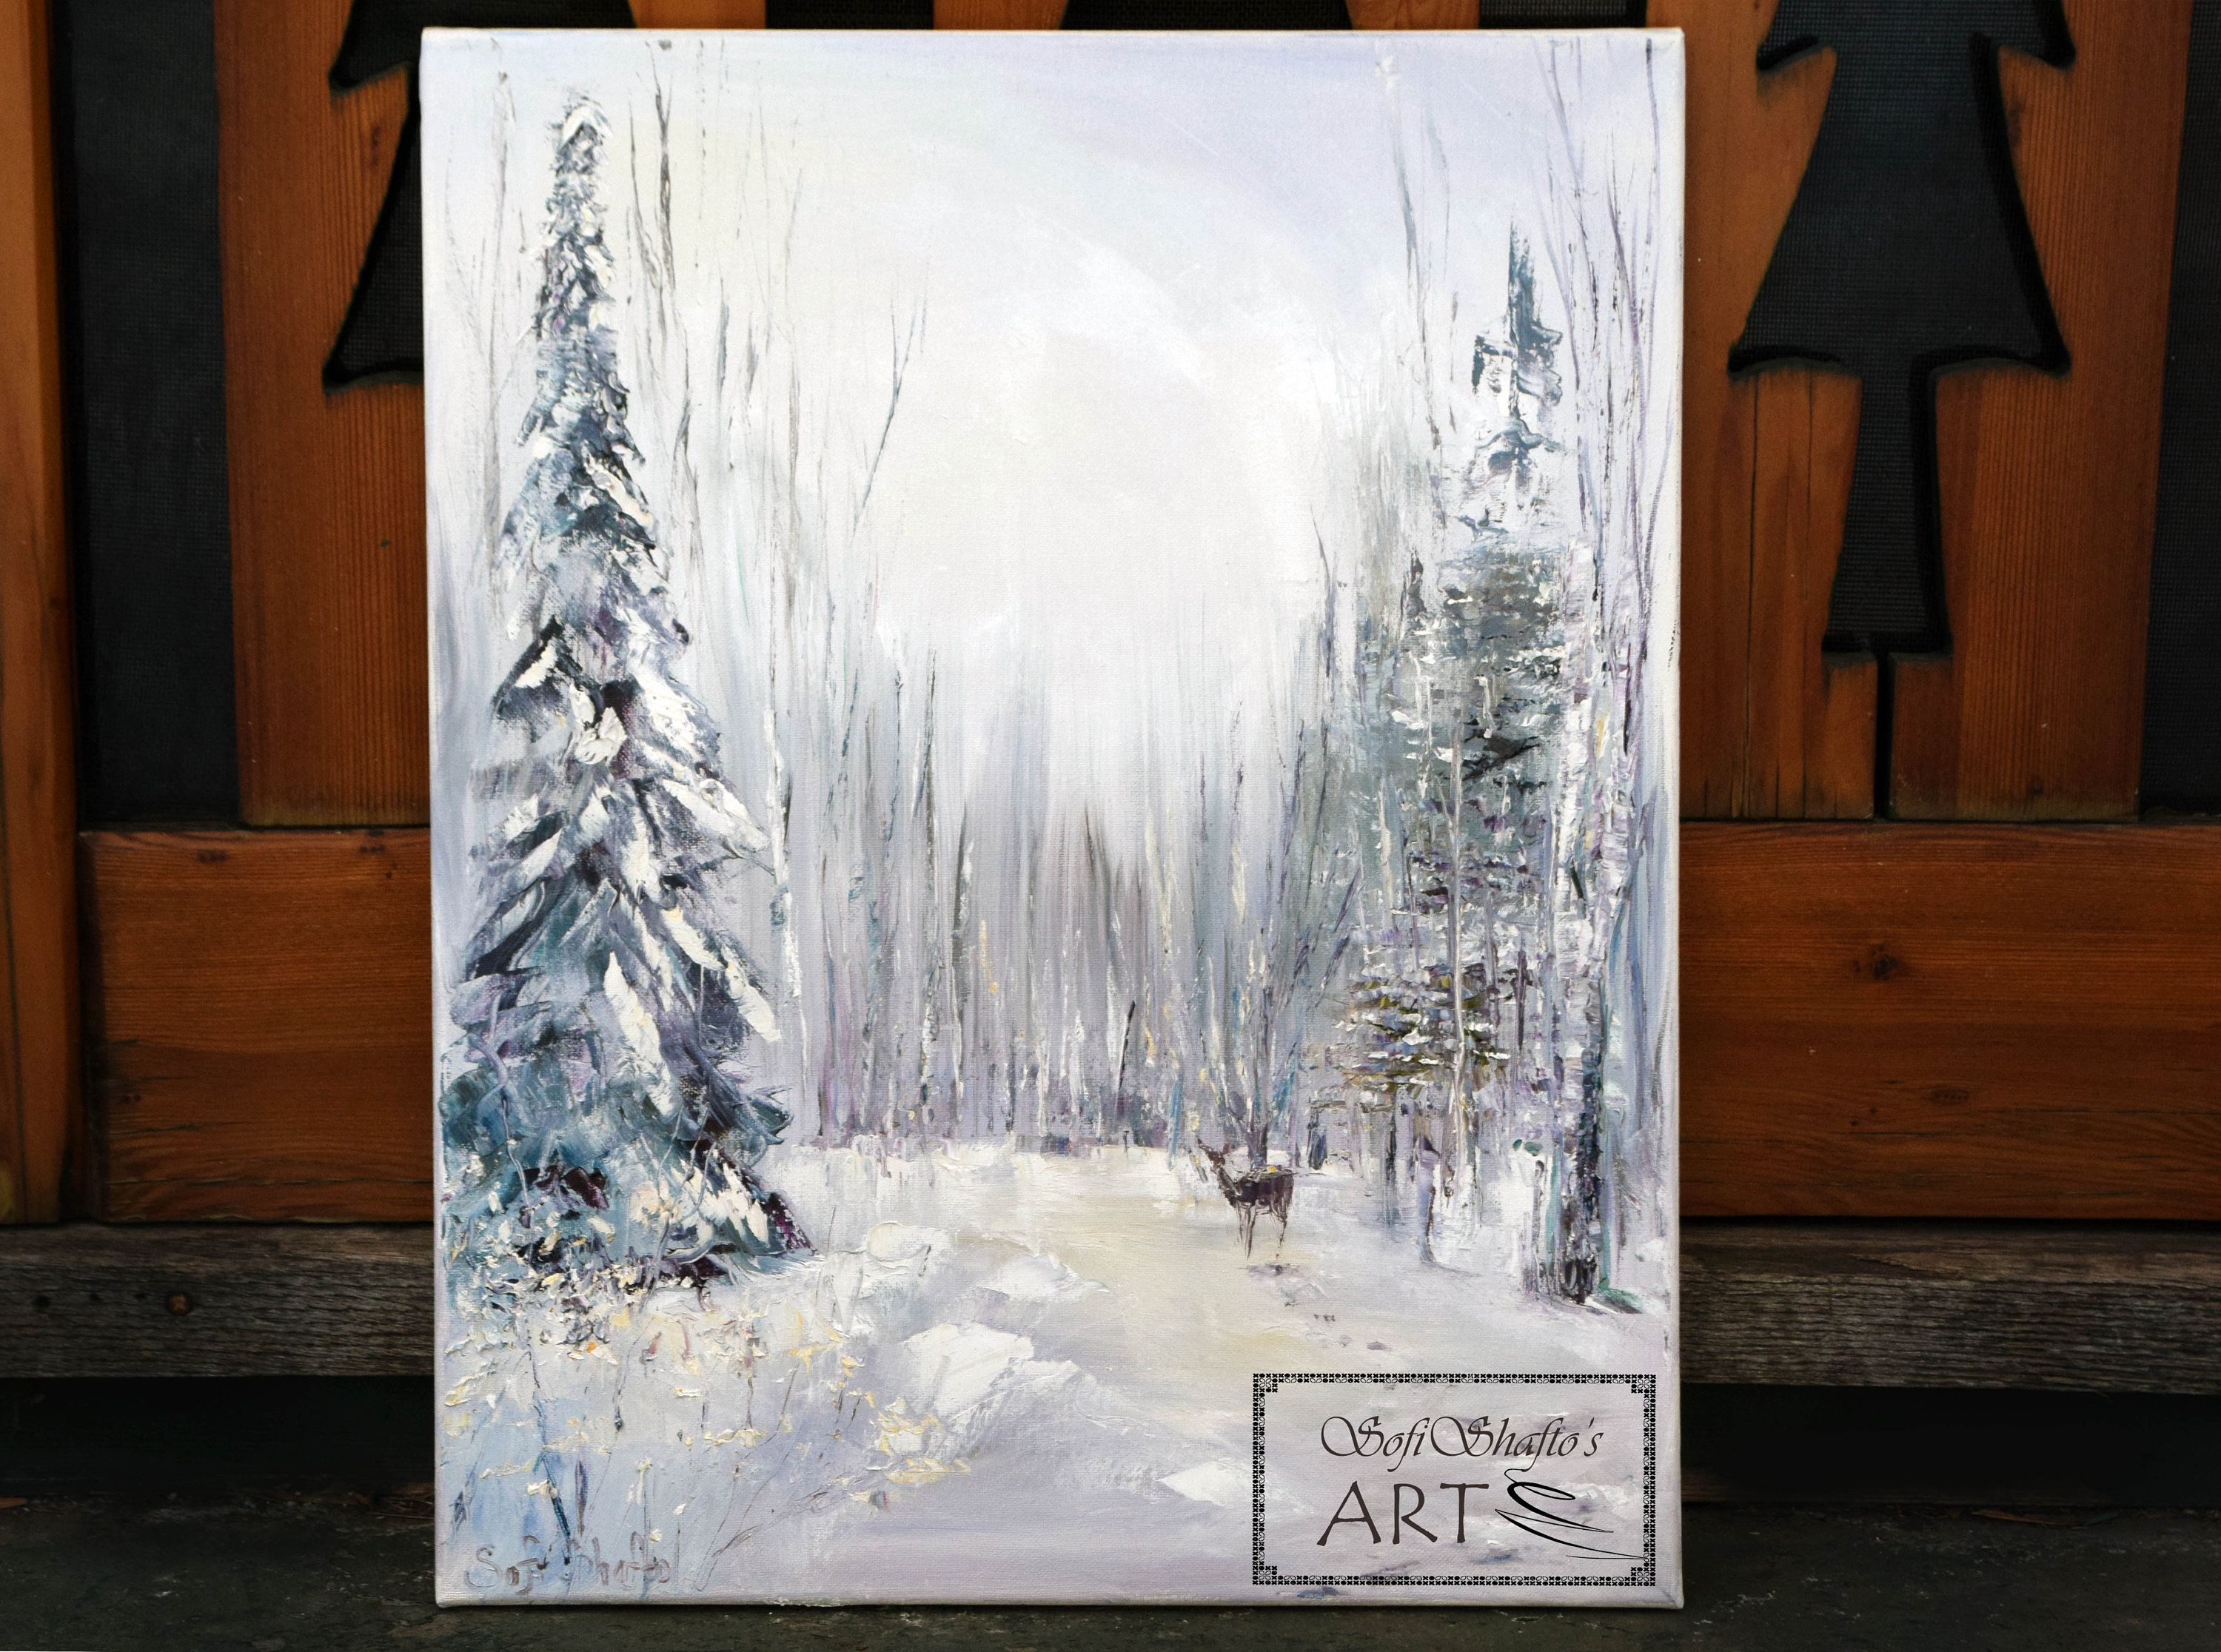 Winter Landscape Original Oil Painting On Canvas 16x20 Etsy Painting Oil Painting On Canvas Original Oil Painting